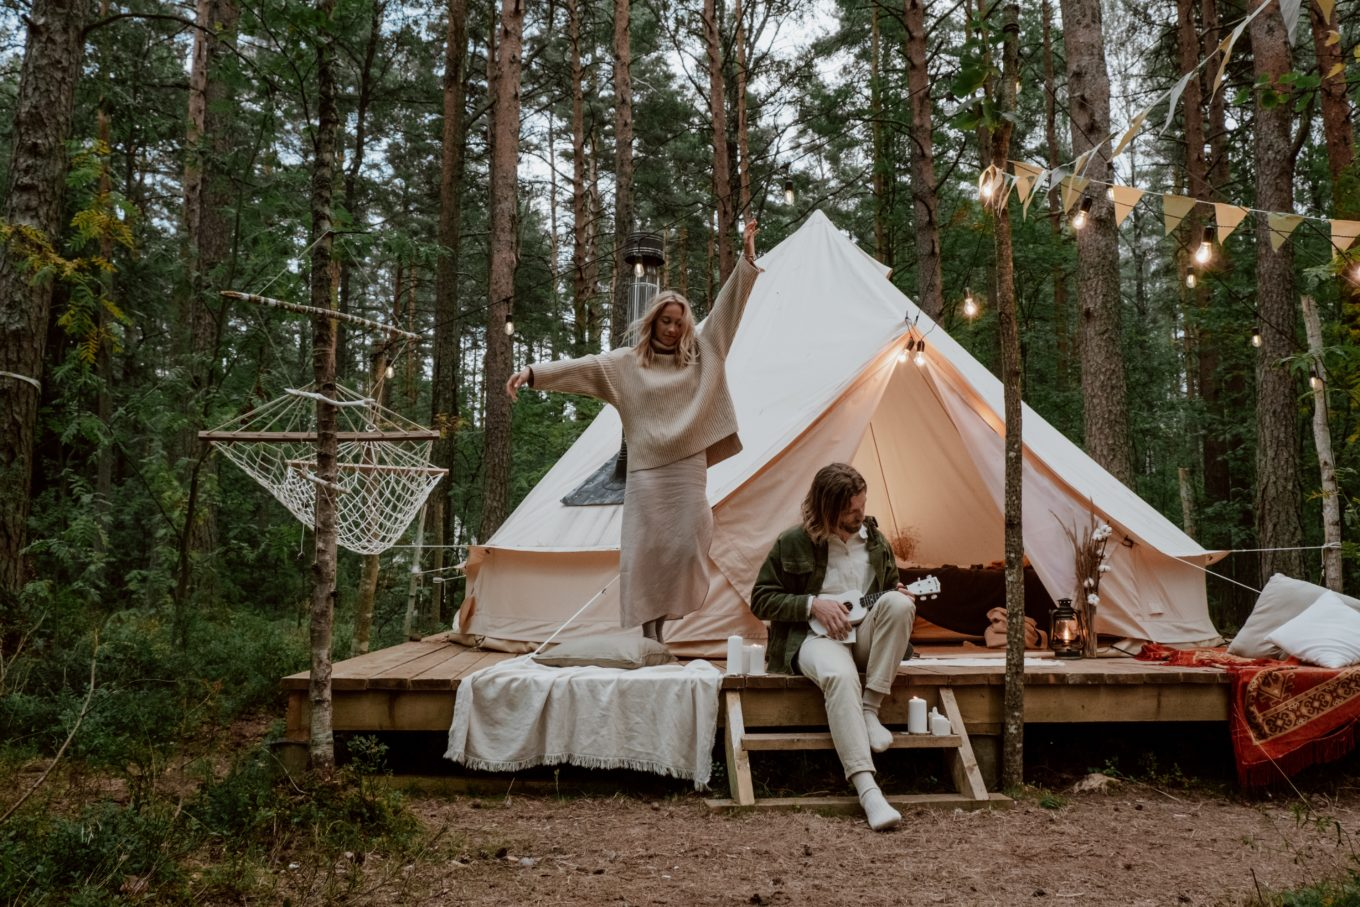 pop-up campings in Nederland - pop-up camping 2021 - pop-up camping veluwe - pop-up camping Schoorl - pop-up camping Toverland